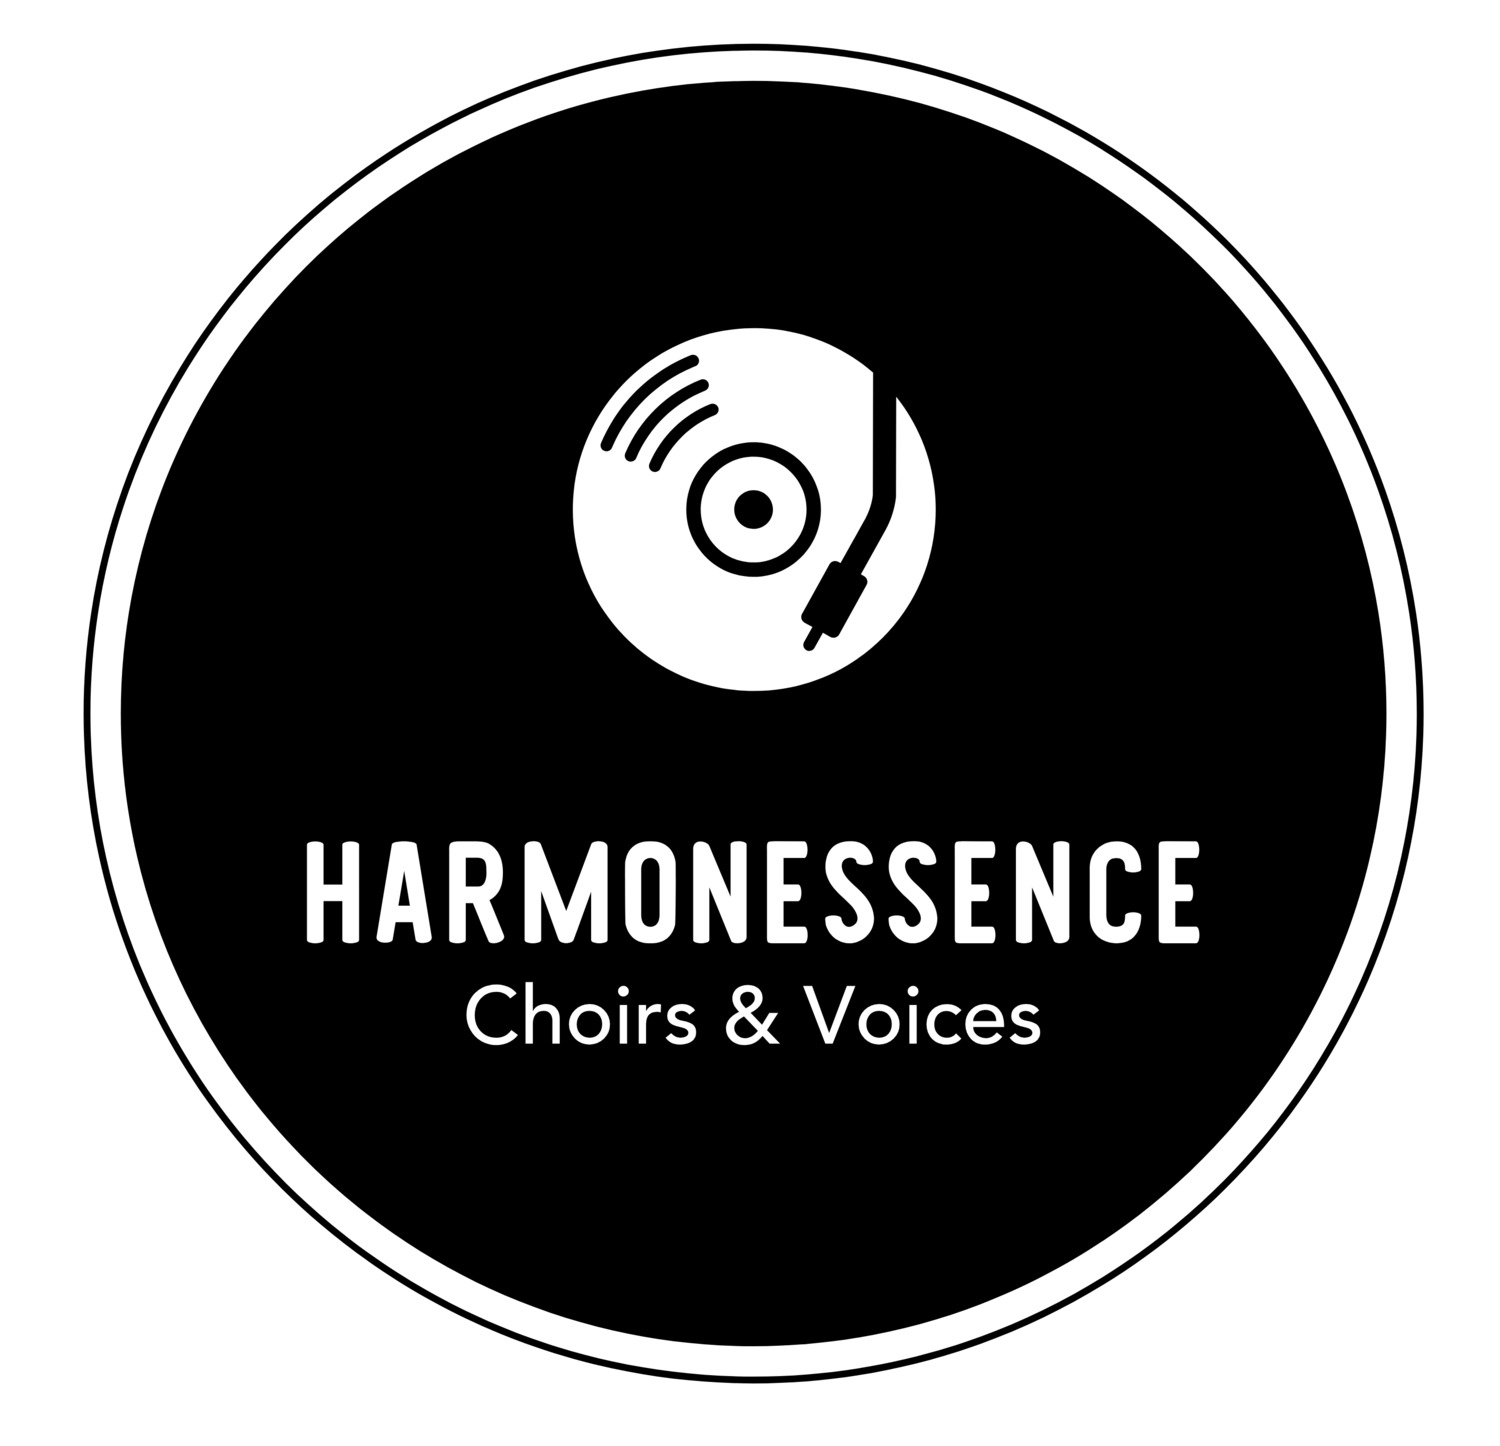 Harmonessence Choirs & Voices